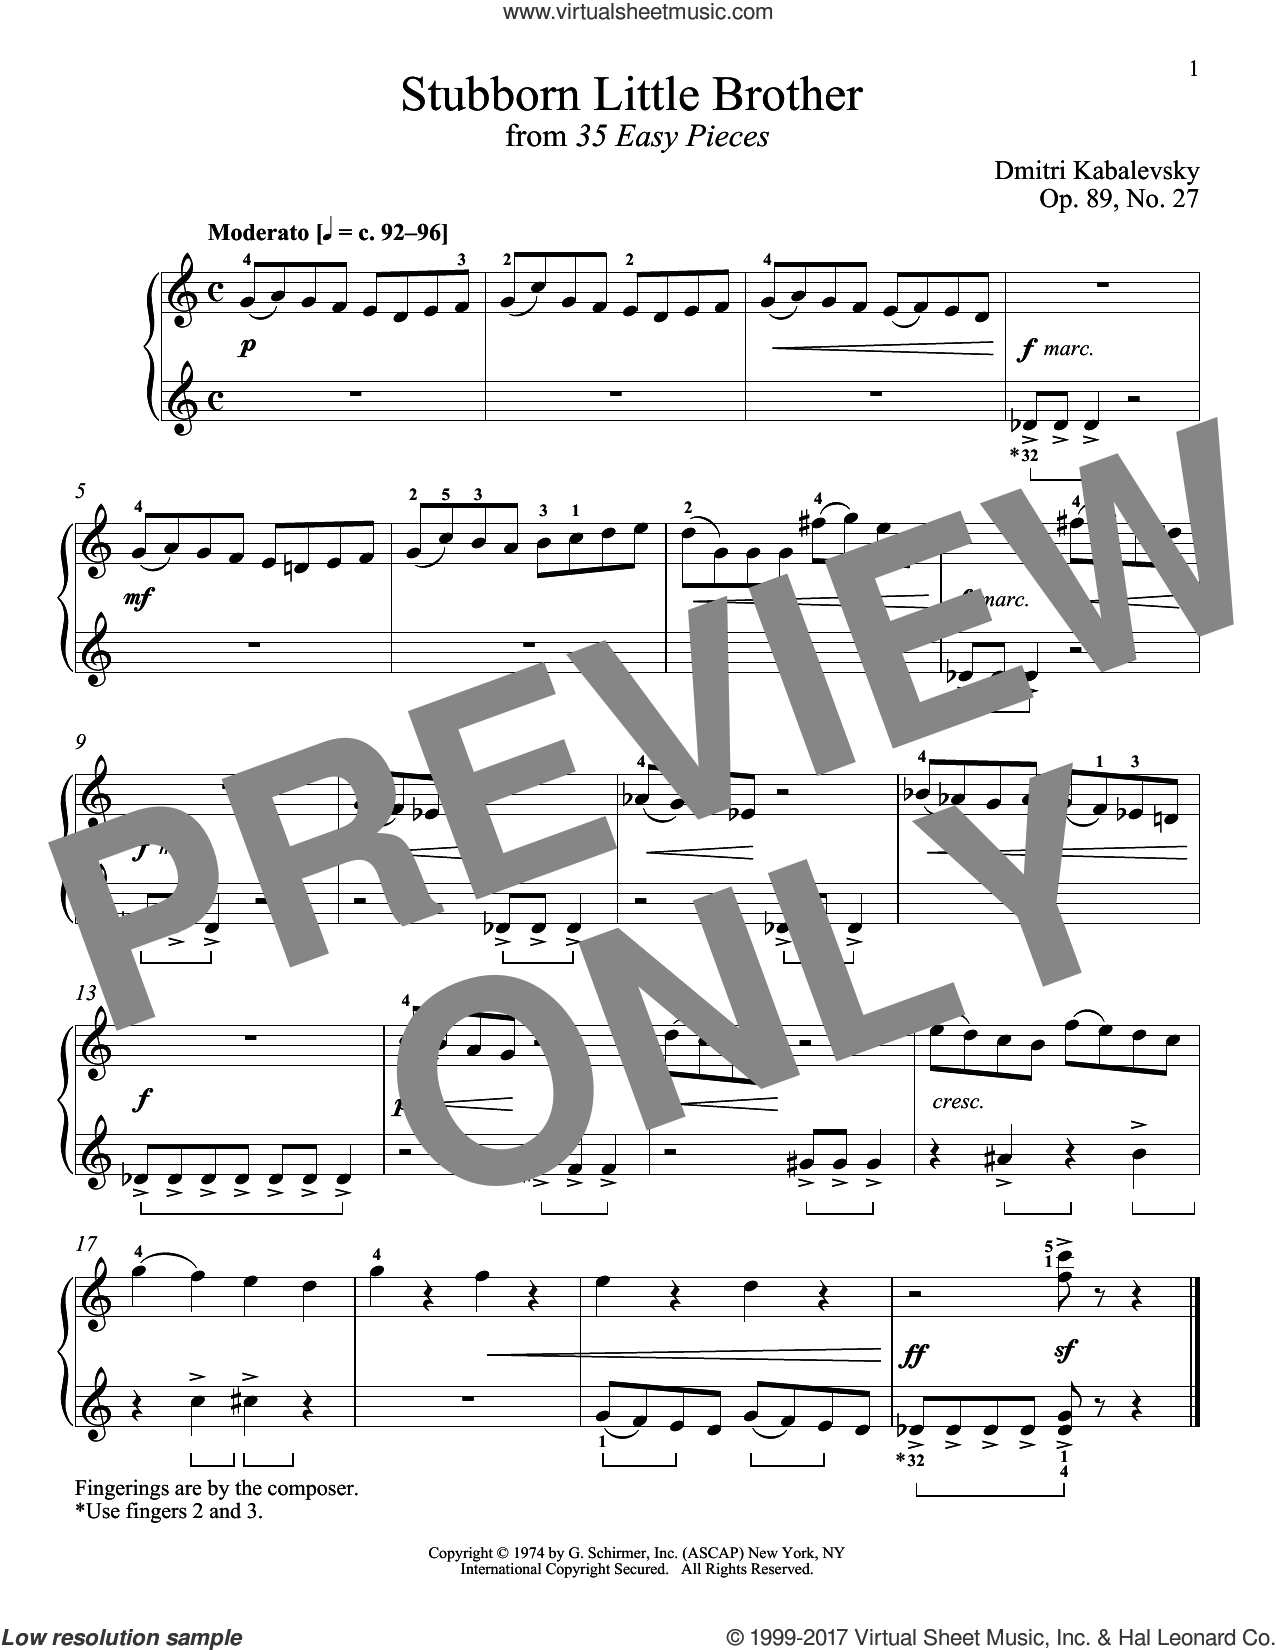 Stubborn Little Brother, Op. 89, No. 27 sheet music for piano solo by Dmitri Kabalevsky and Richard Walters. Score Image Preview.